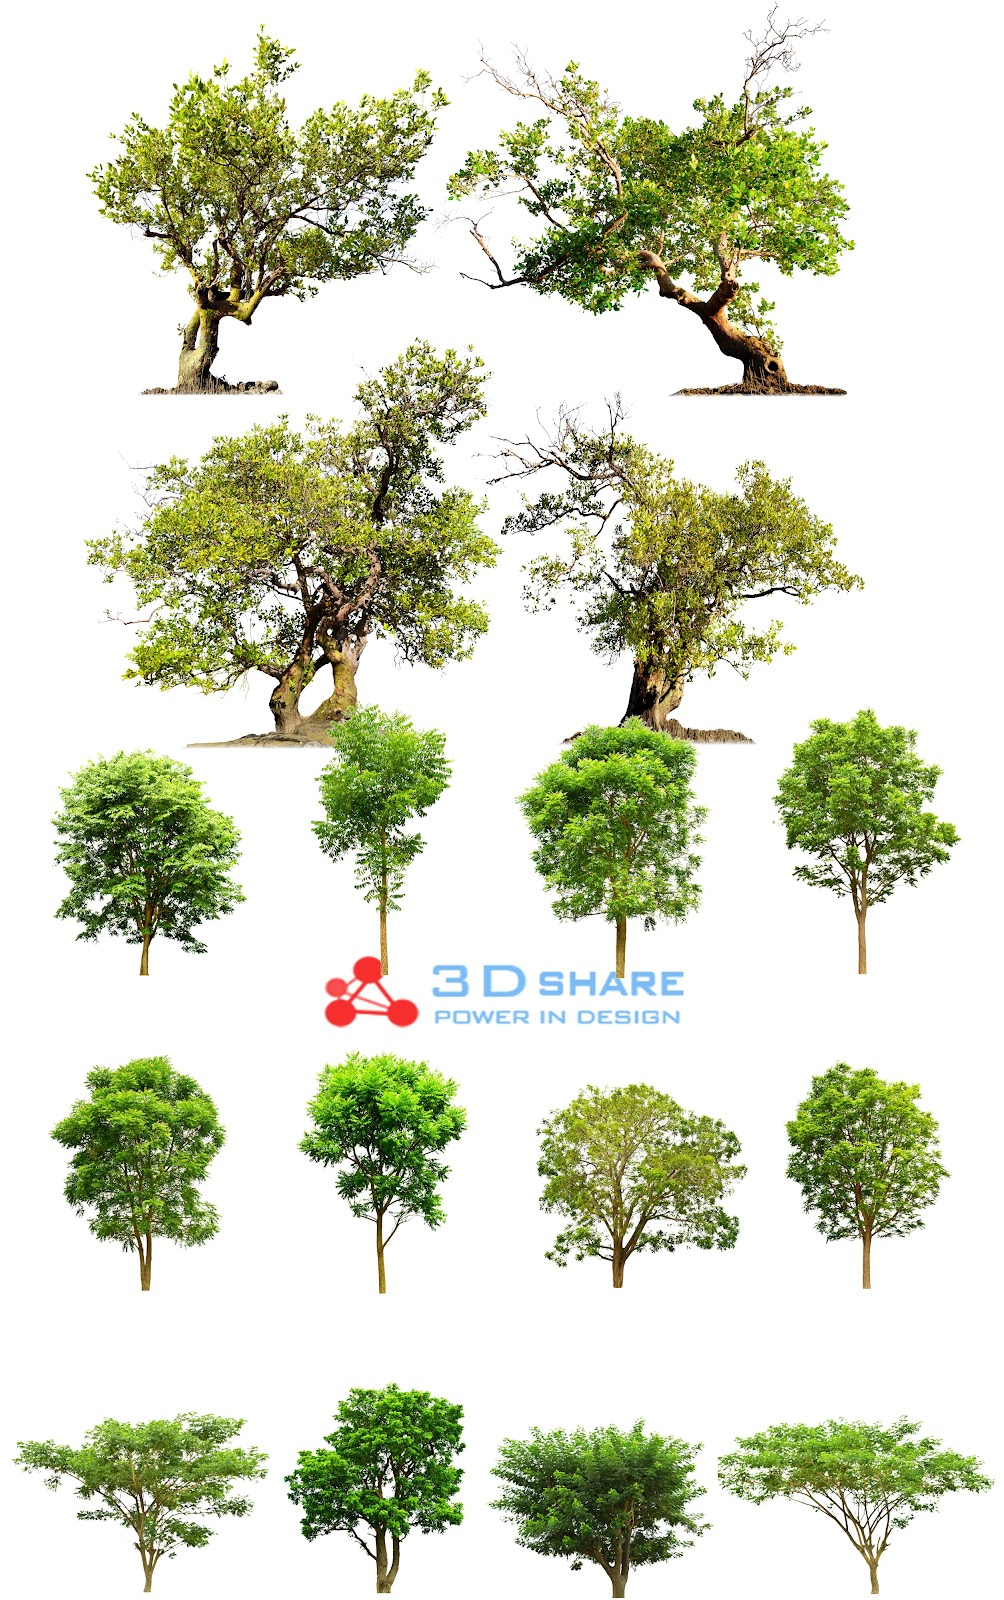 [photoshop][tree] part 2